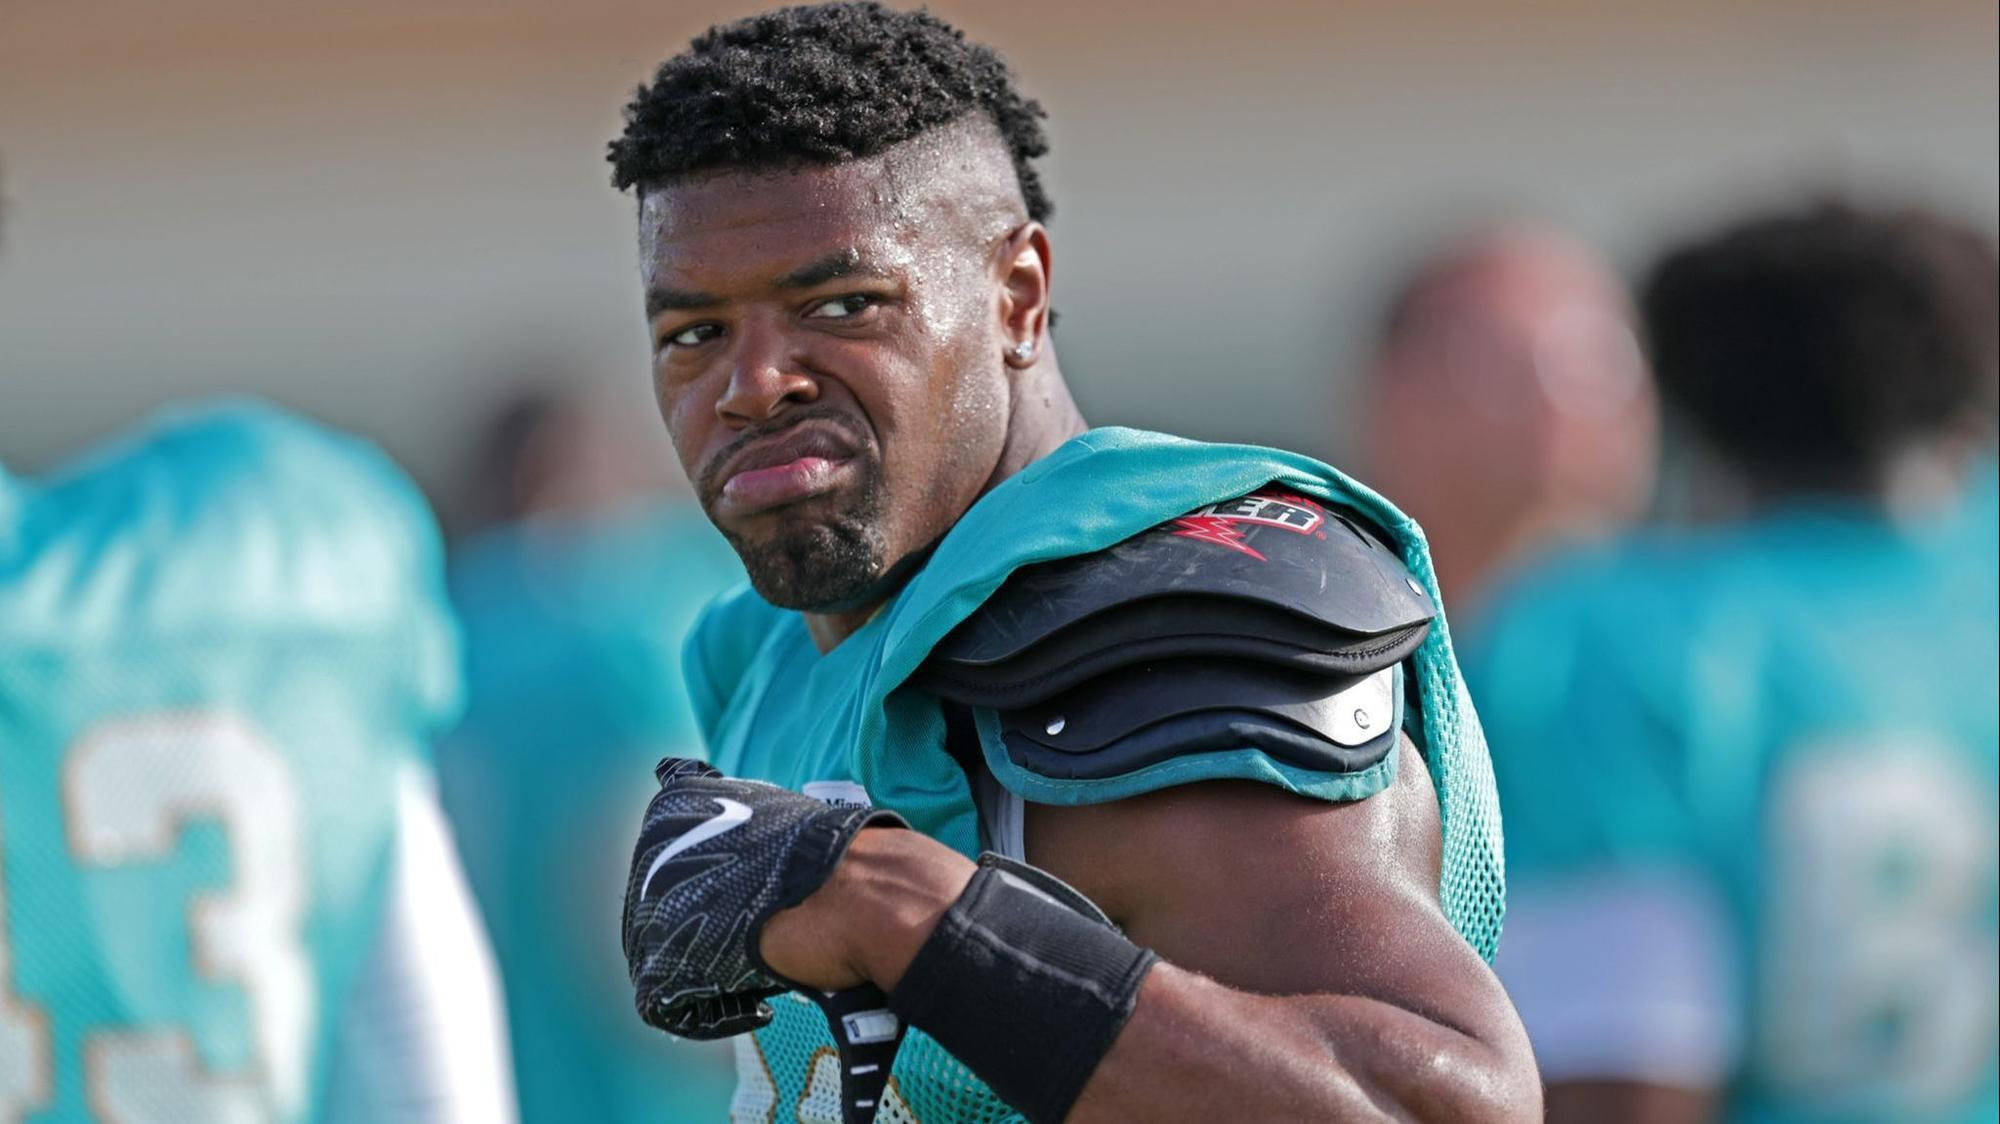 Fl-sp-dolphins-cameron-wake-20181019